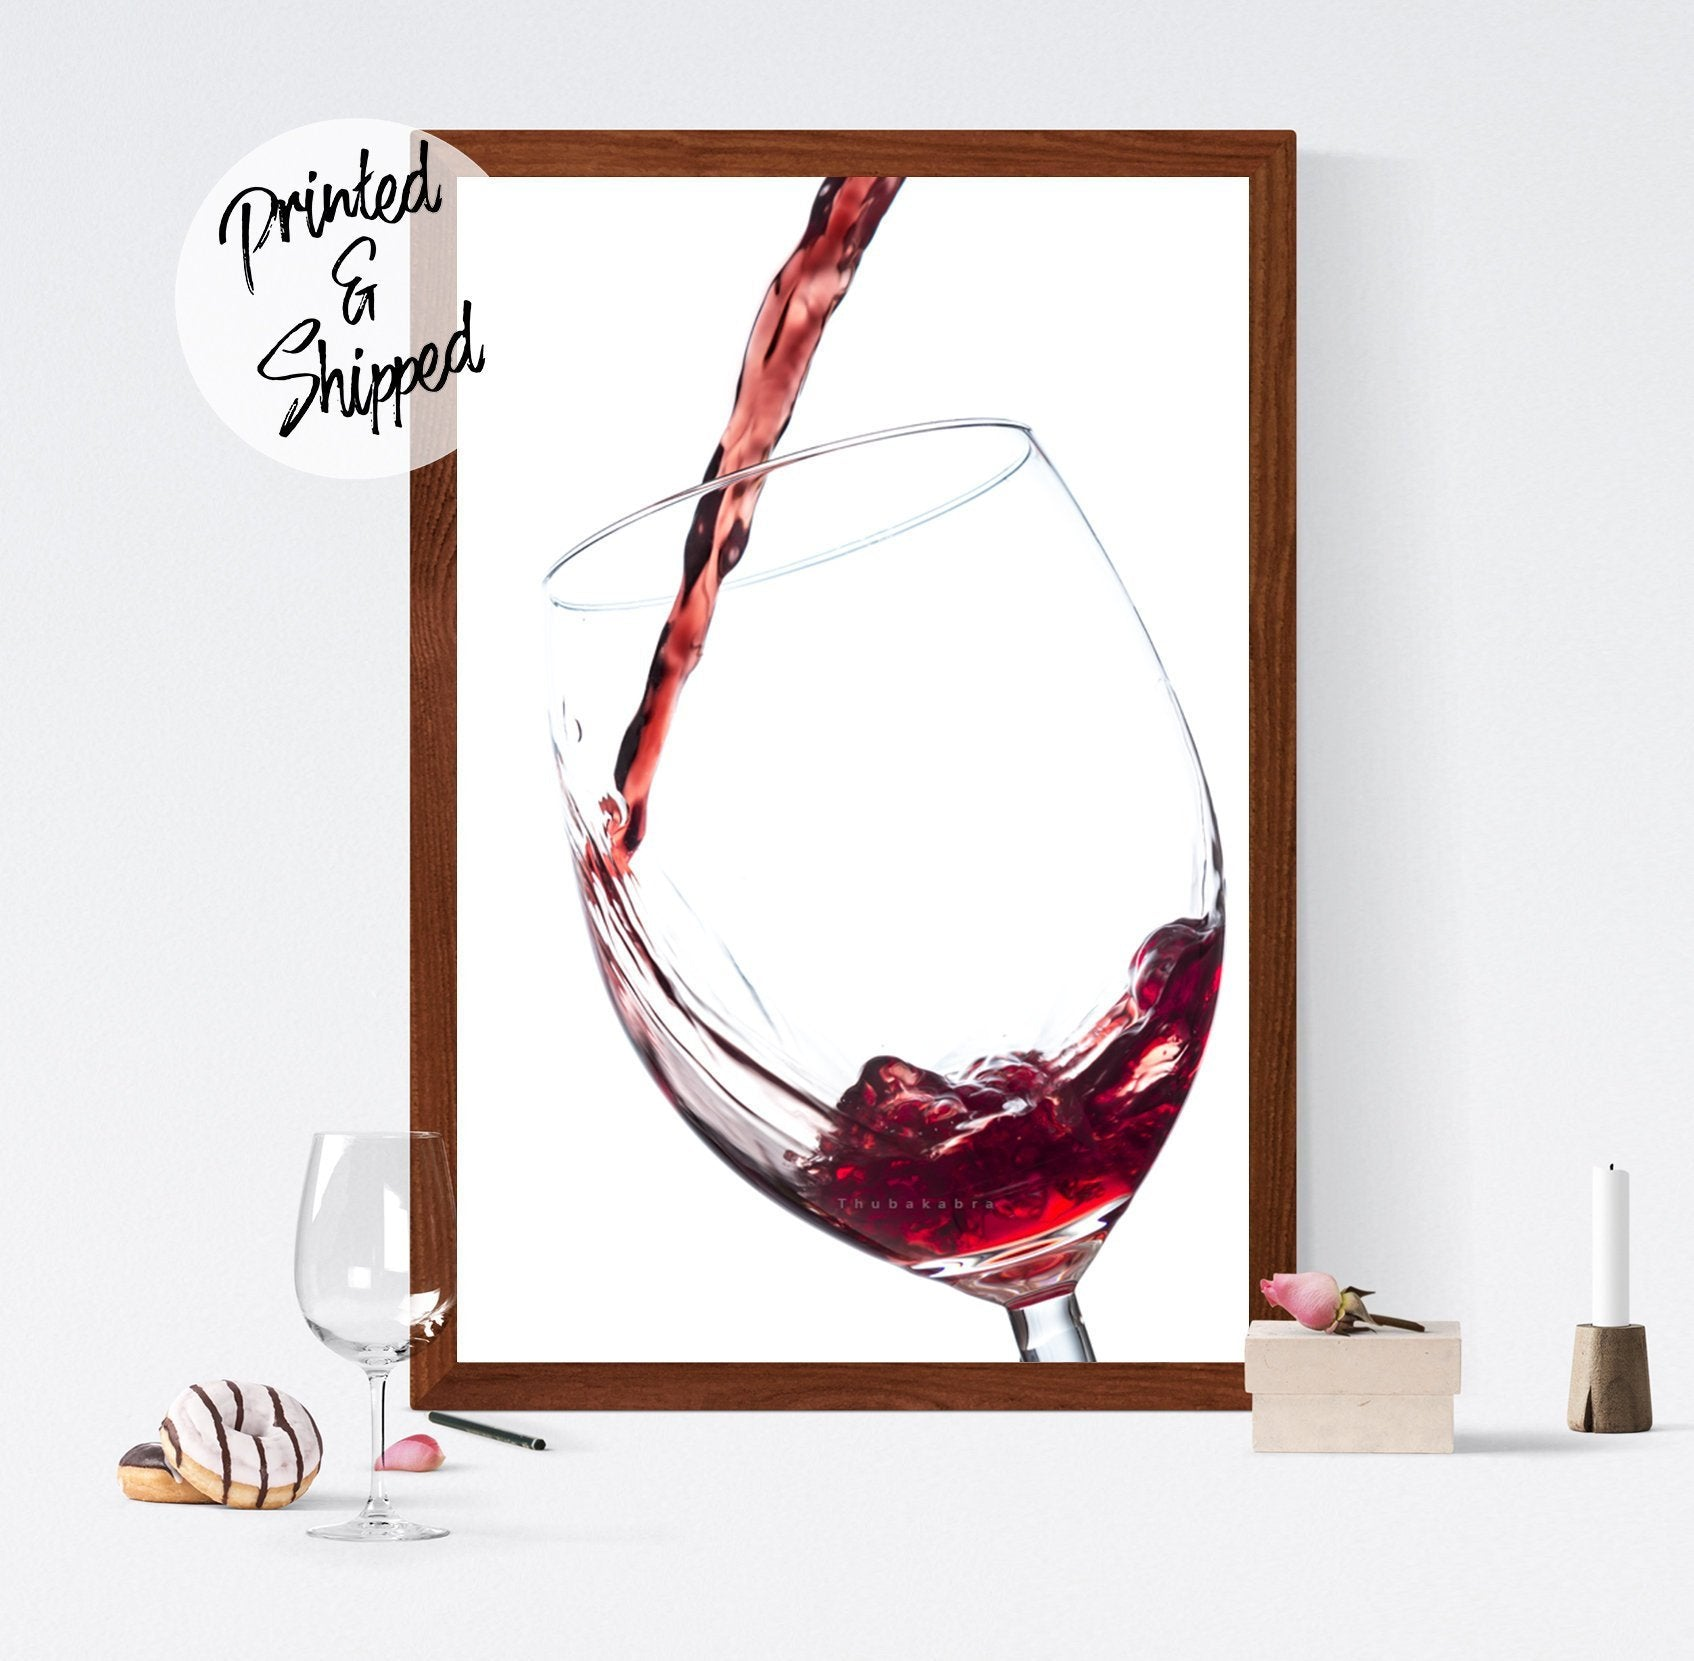 Wine Print | Wine Kitchen Art Poster Gift for Her | Elegant Red Wine Wall Decor | Wine Photography Art Printed on Paper - Brandless Artist